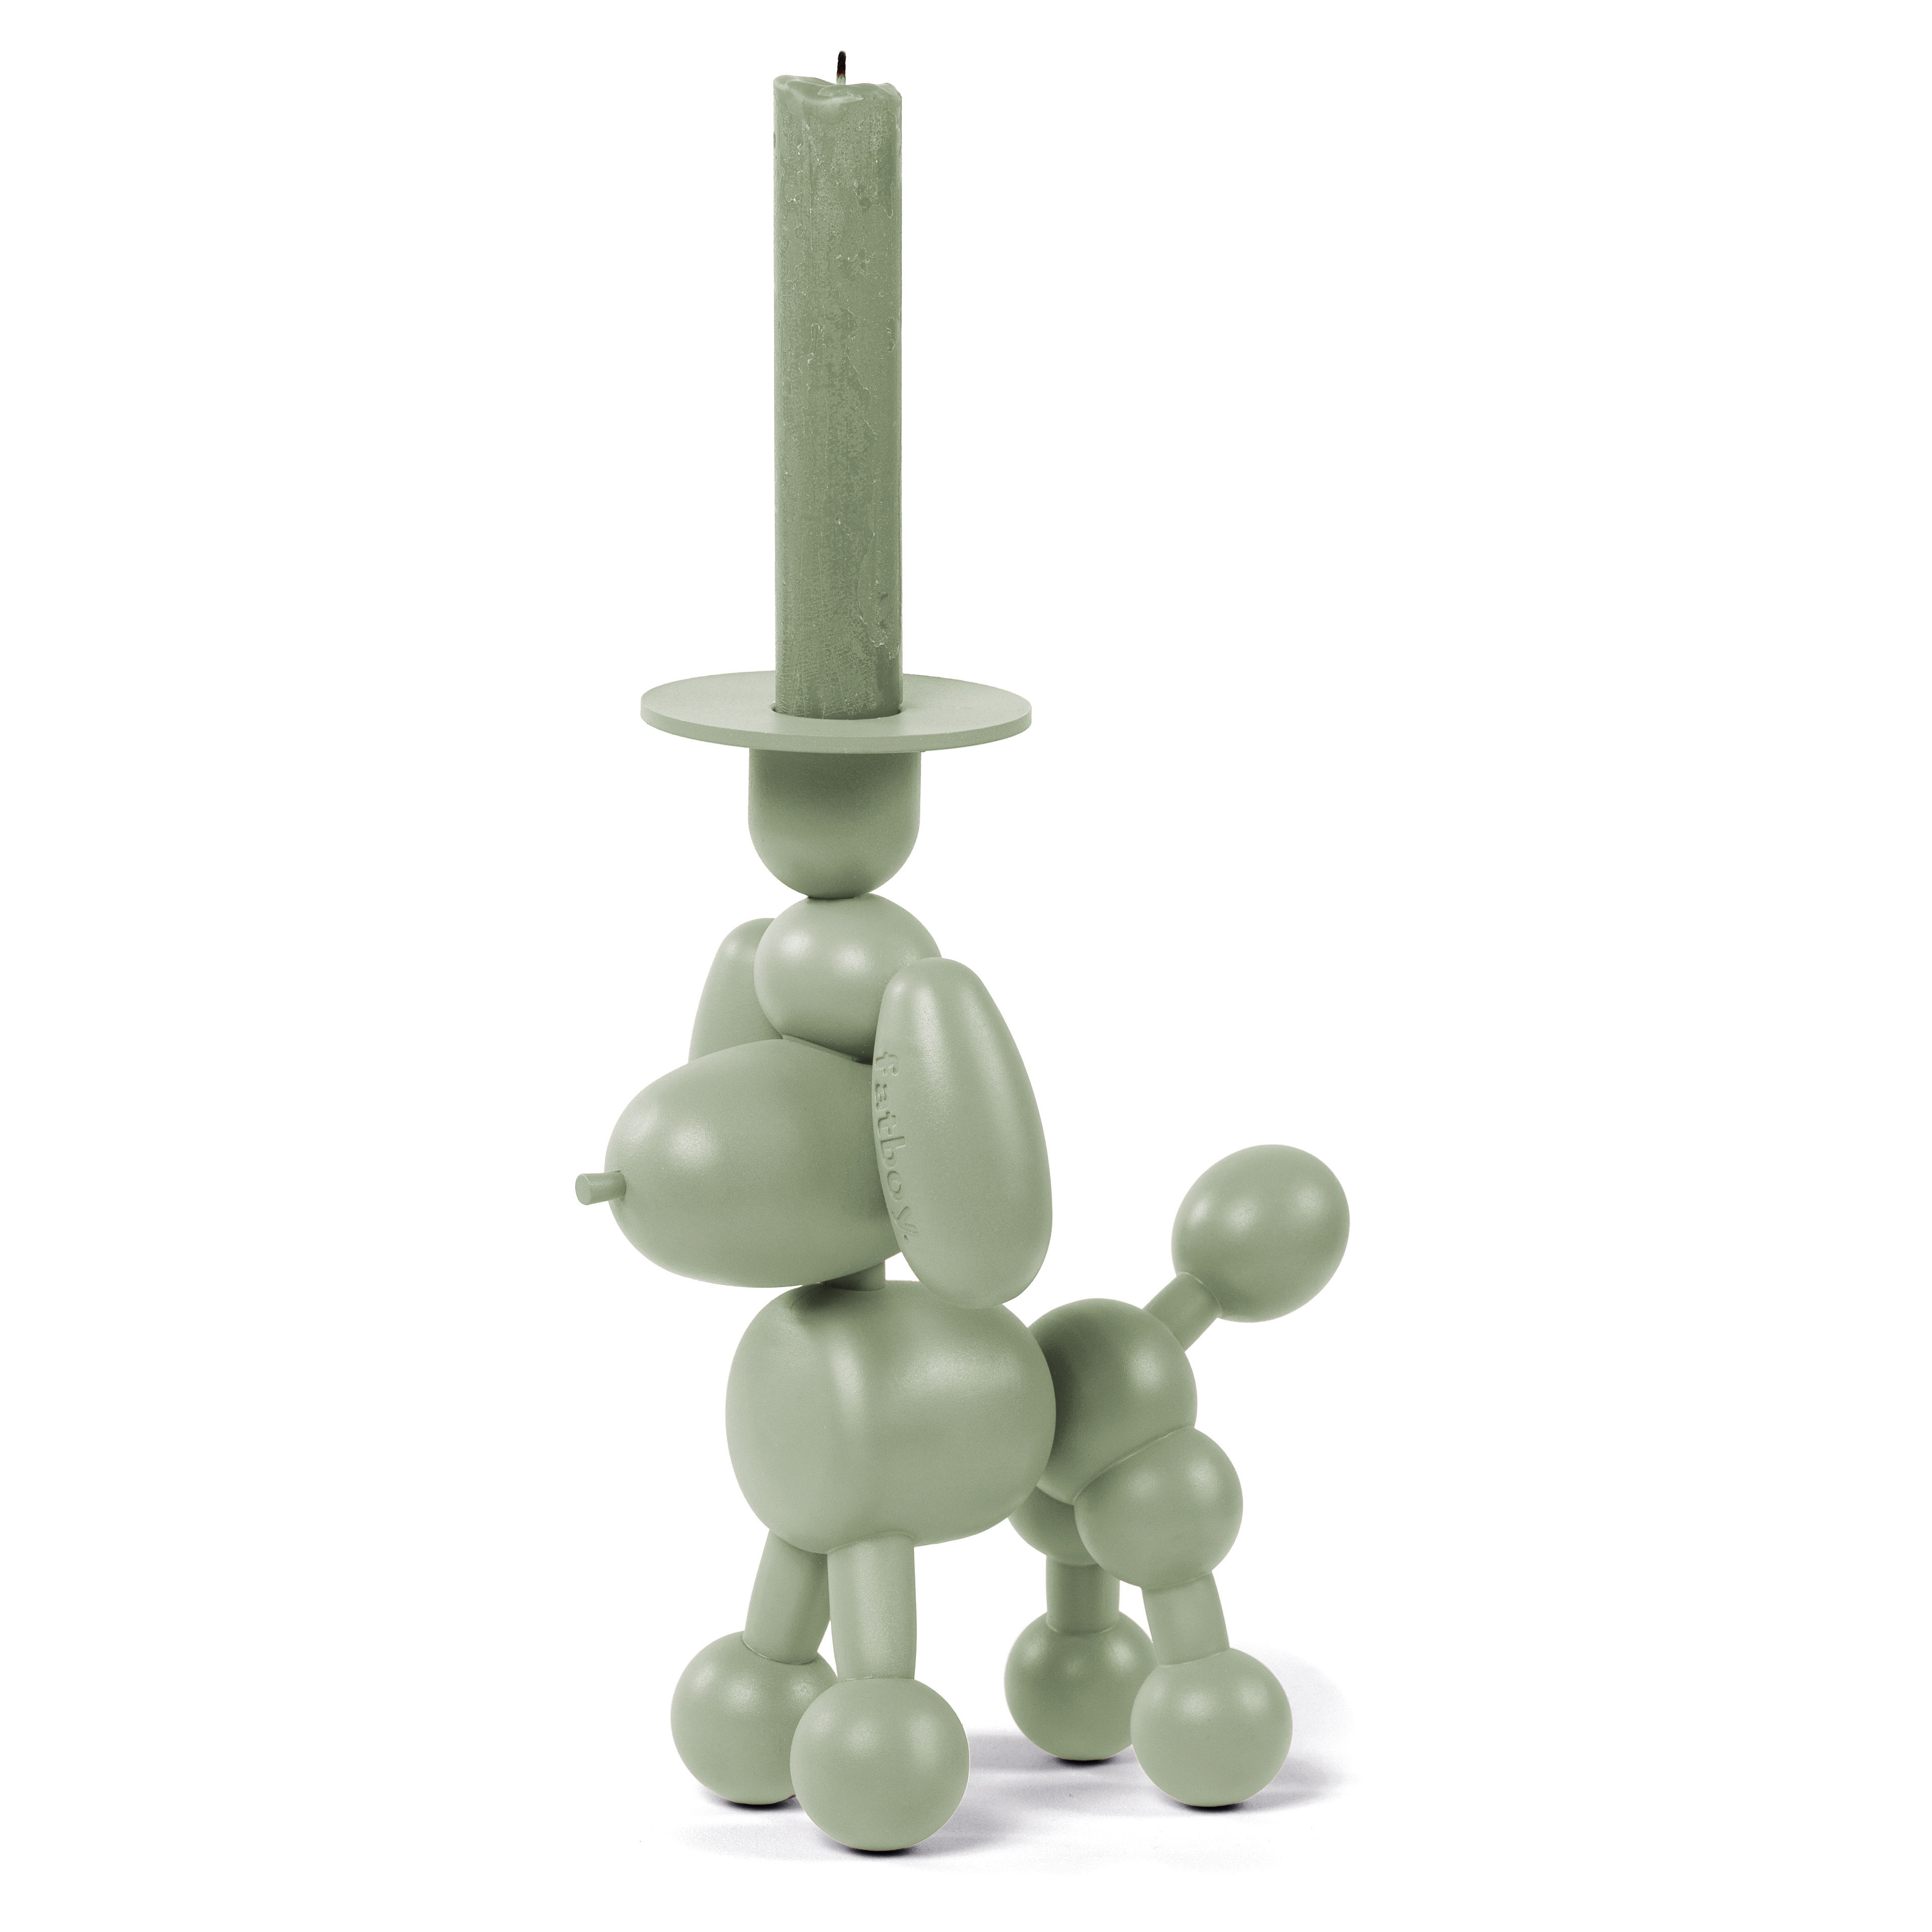 Decoration - Candles & Candle Holders - Can-dolly Candle stick - / Aluminium by Fatboy - Green - Aluminium